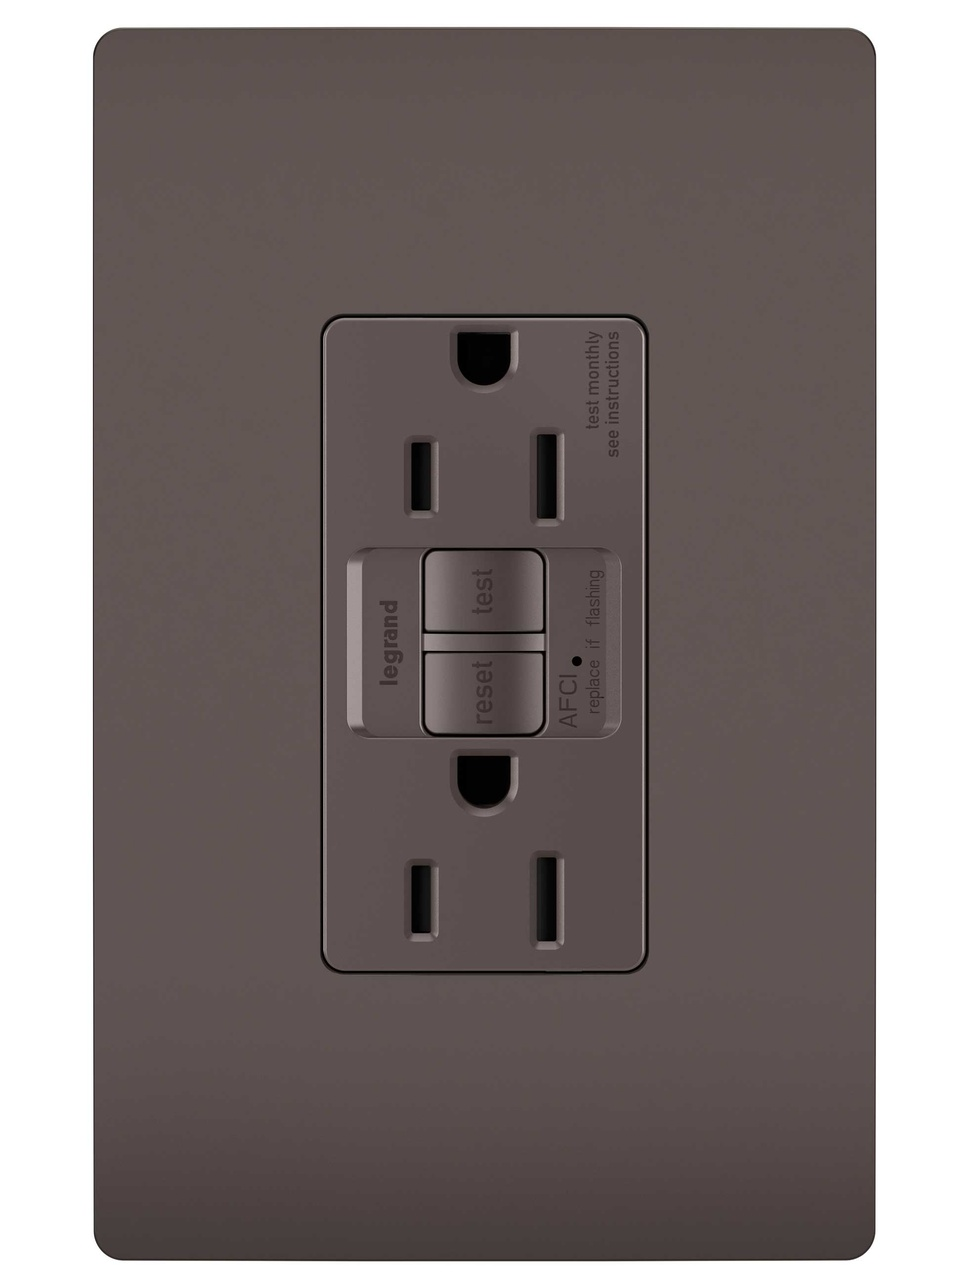 Tamper-Resistant 15A Outlet Branch Circuit AFCI Receptacle, Brown